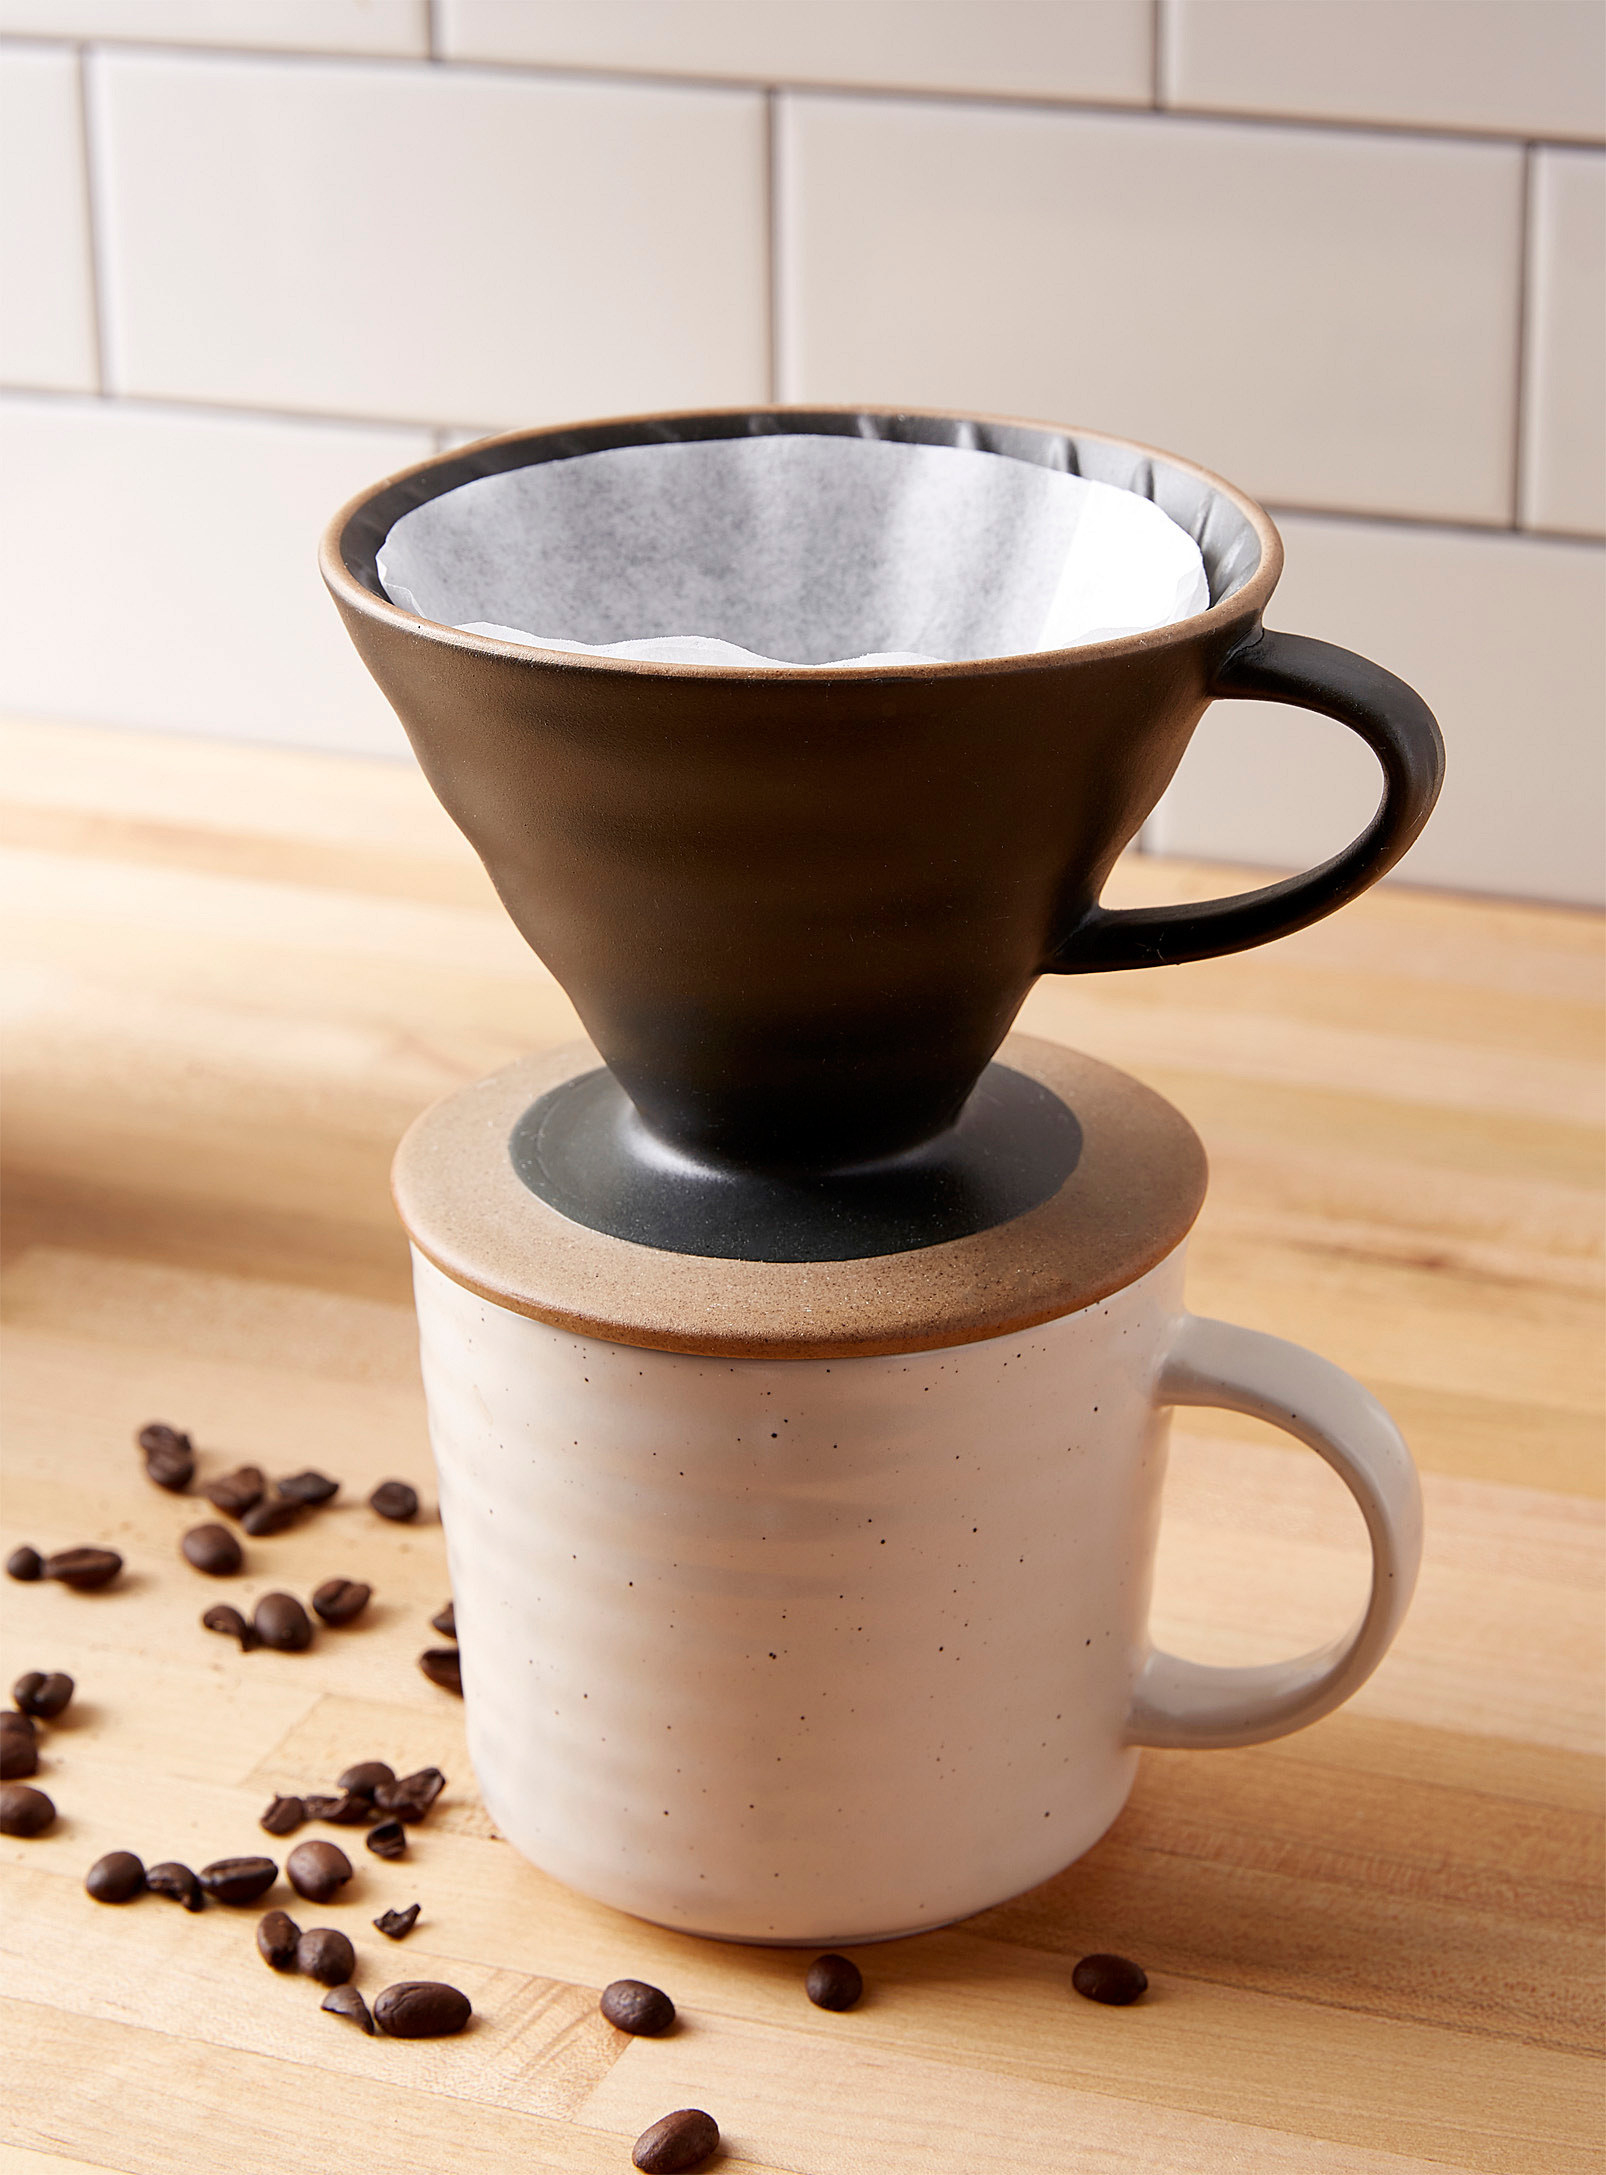 A stoneware pour over coffee dripper with a handle placed on top of a small mug